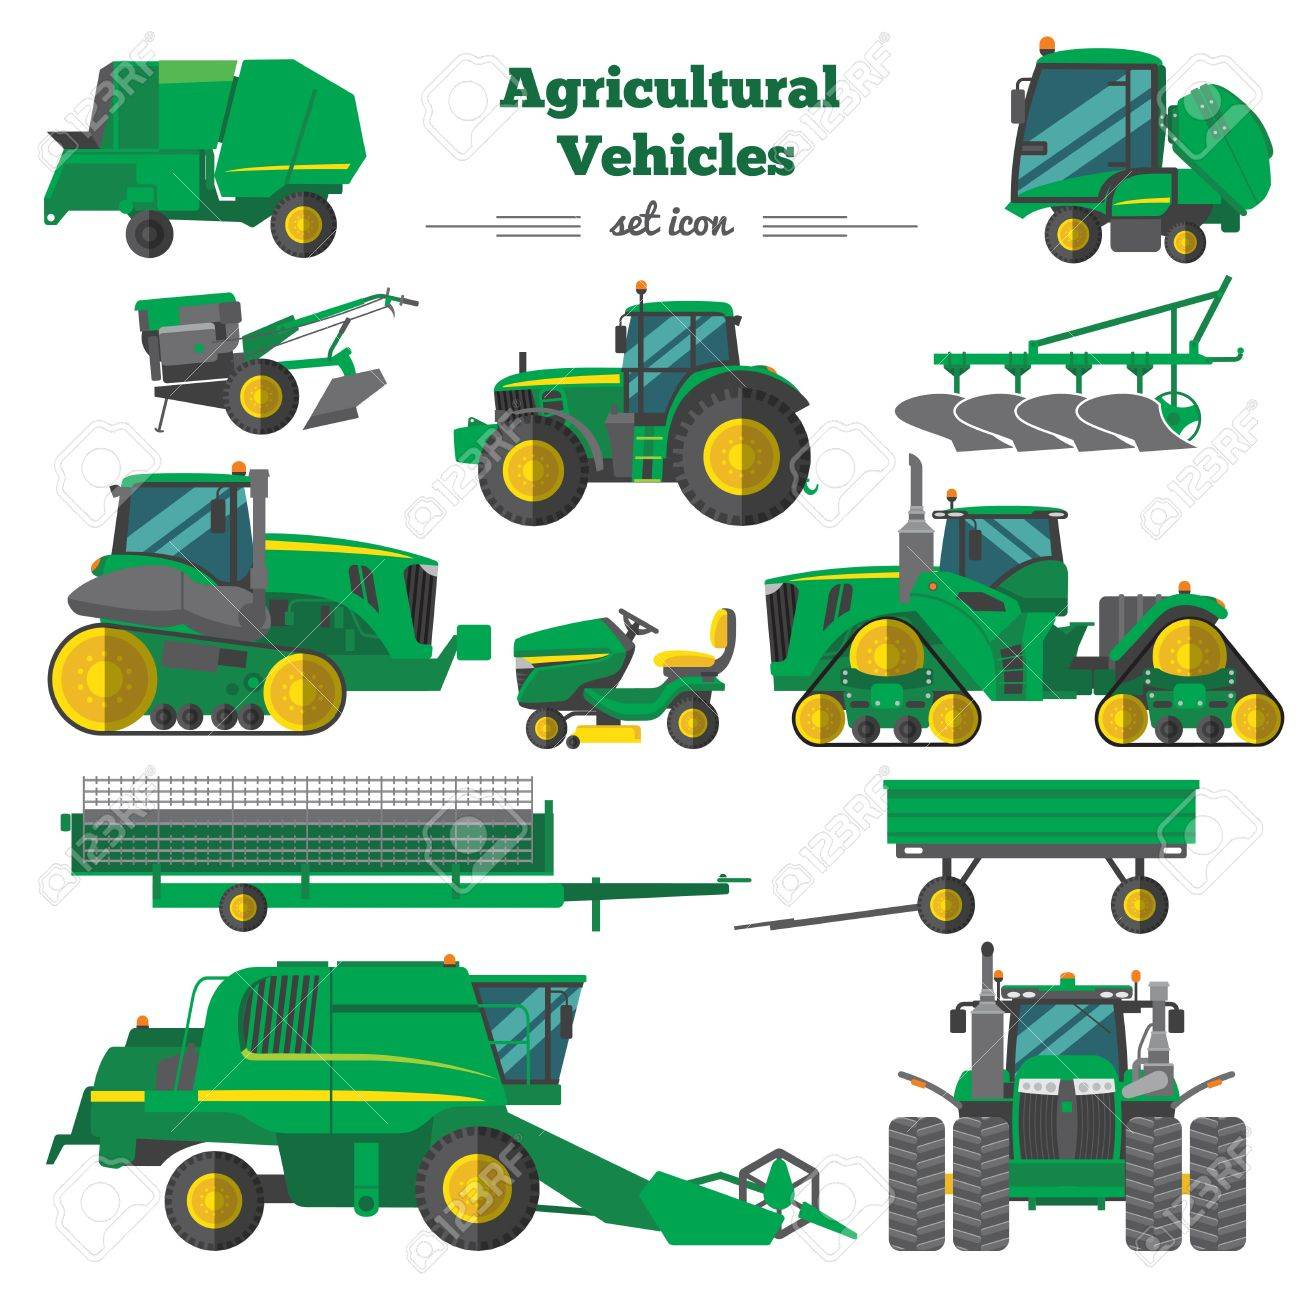 Agricultural Vehicles Flat Icons Set vector illustration. - 85130981